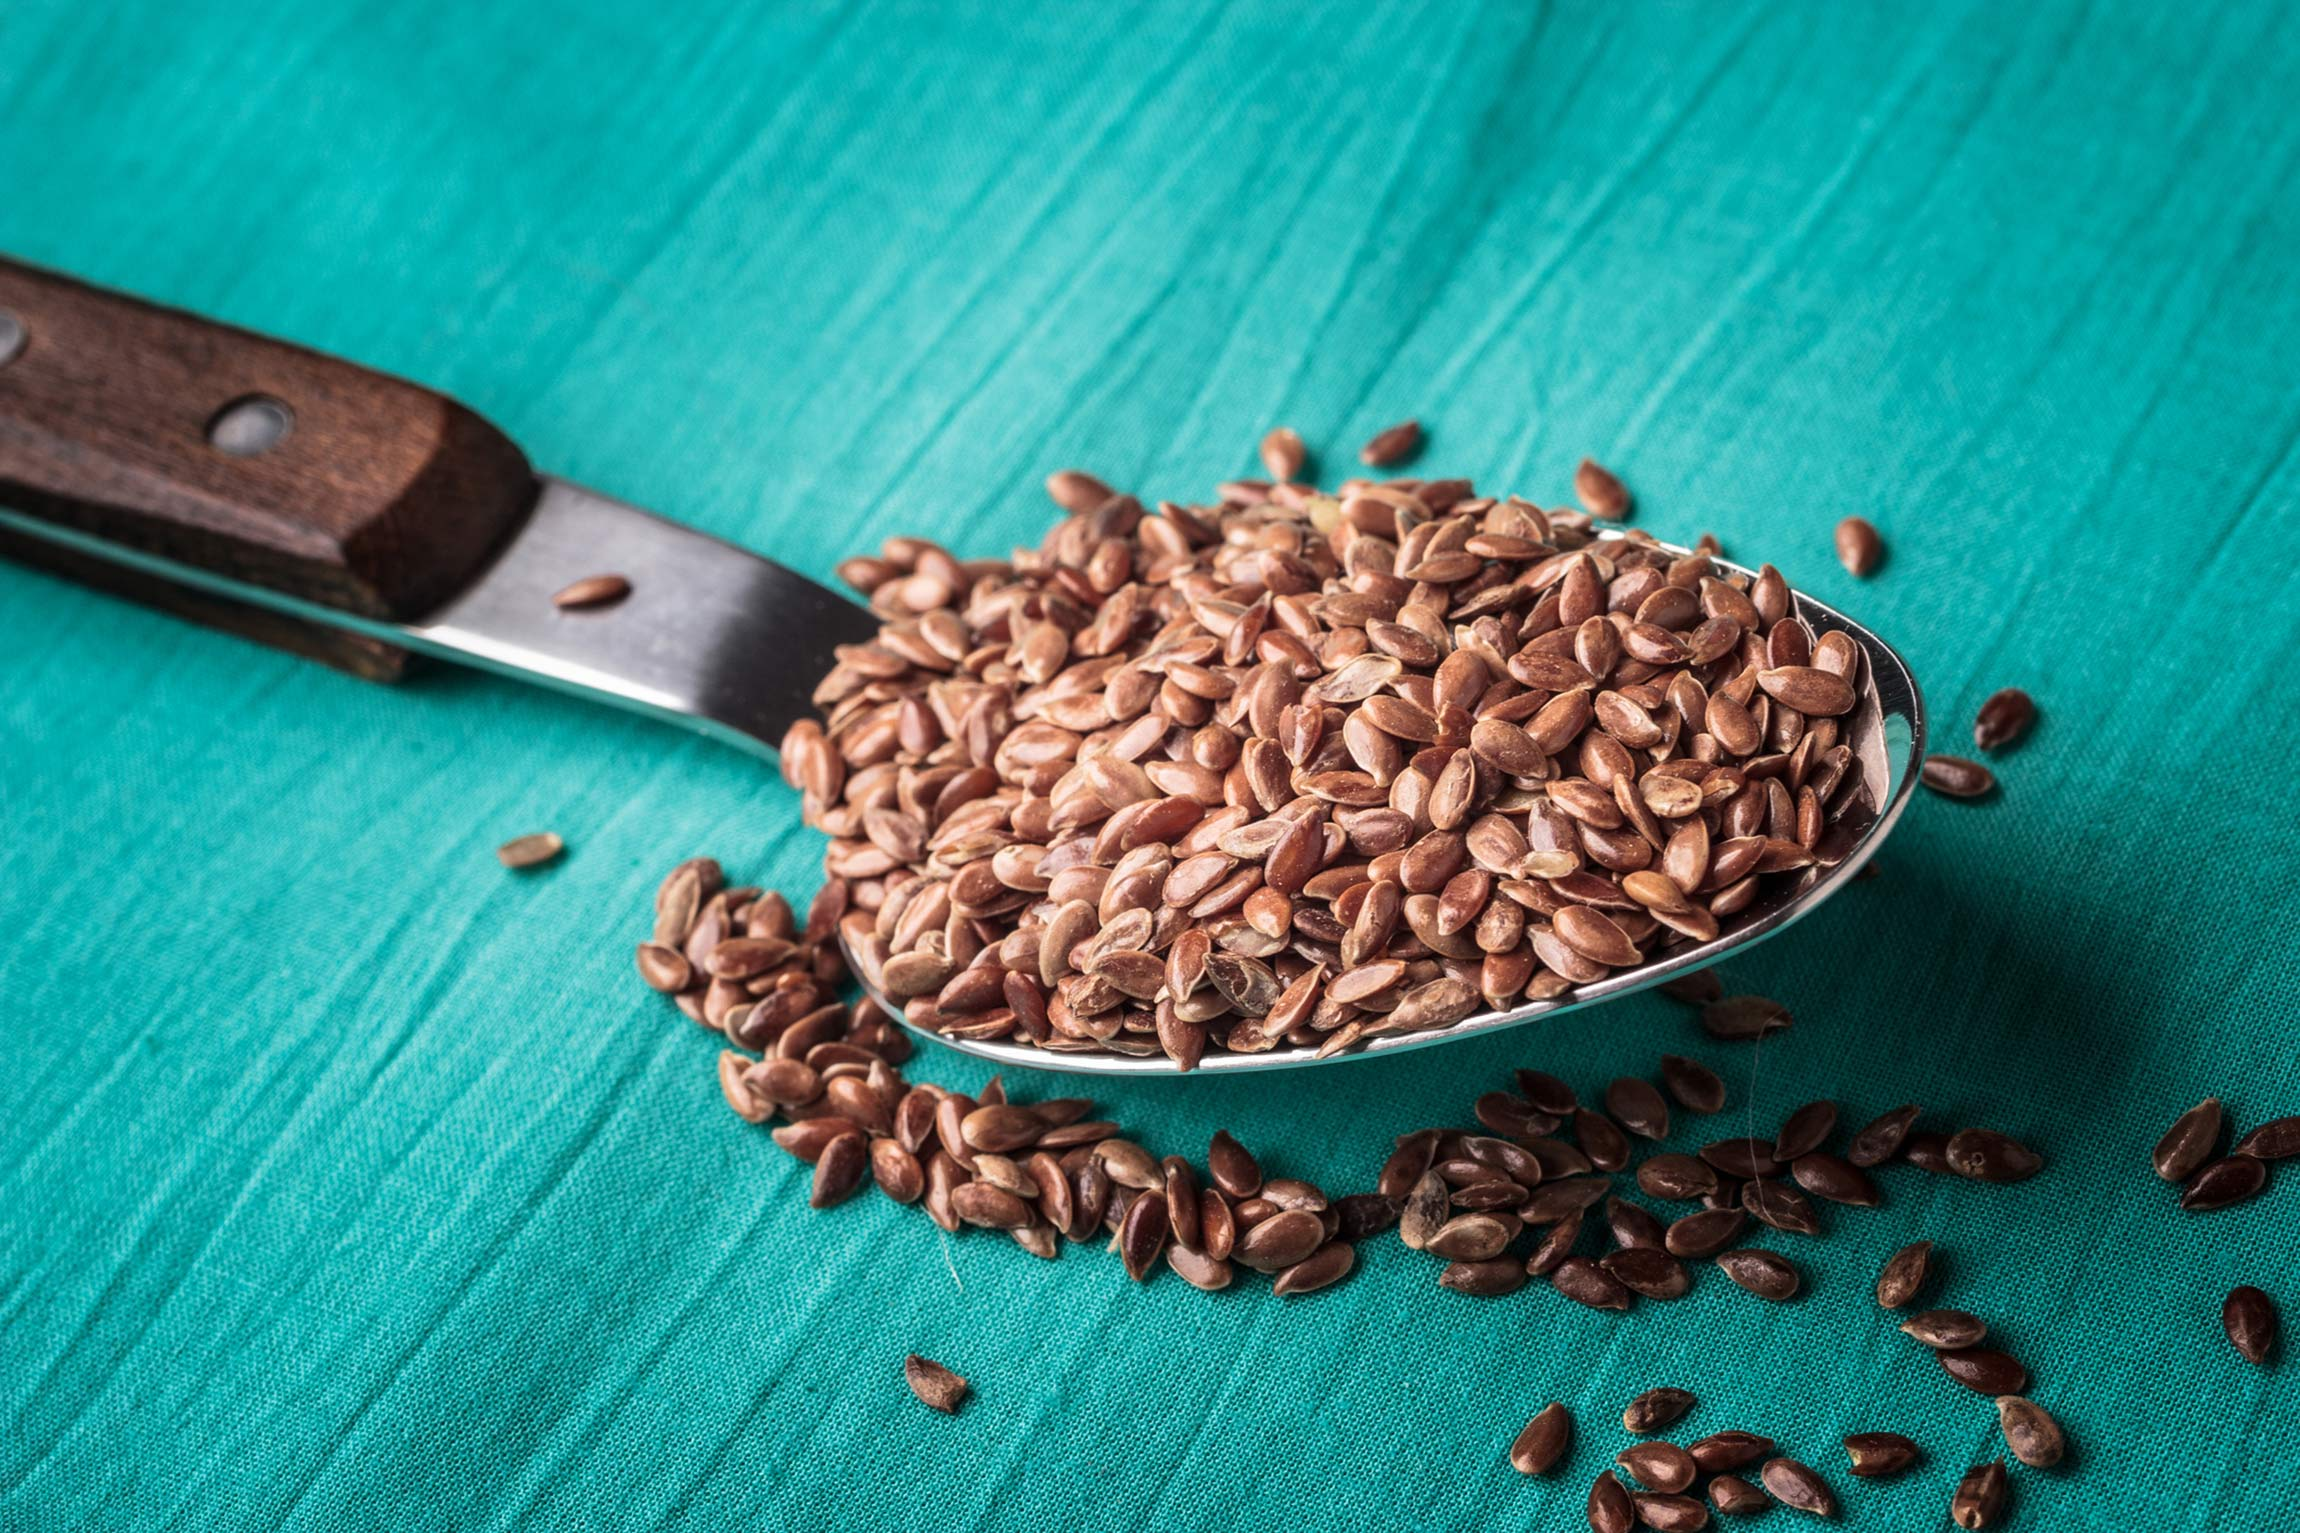 A spoonful of flax seeds